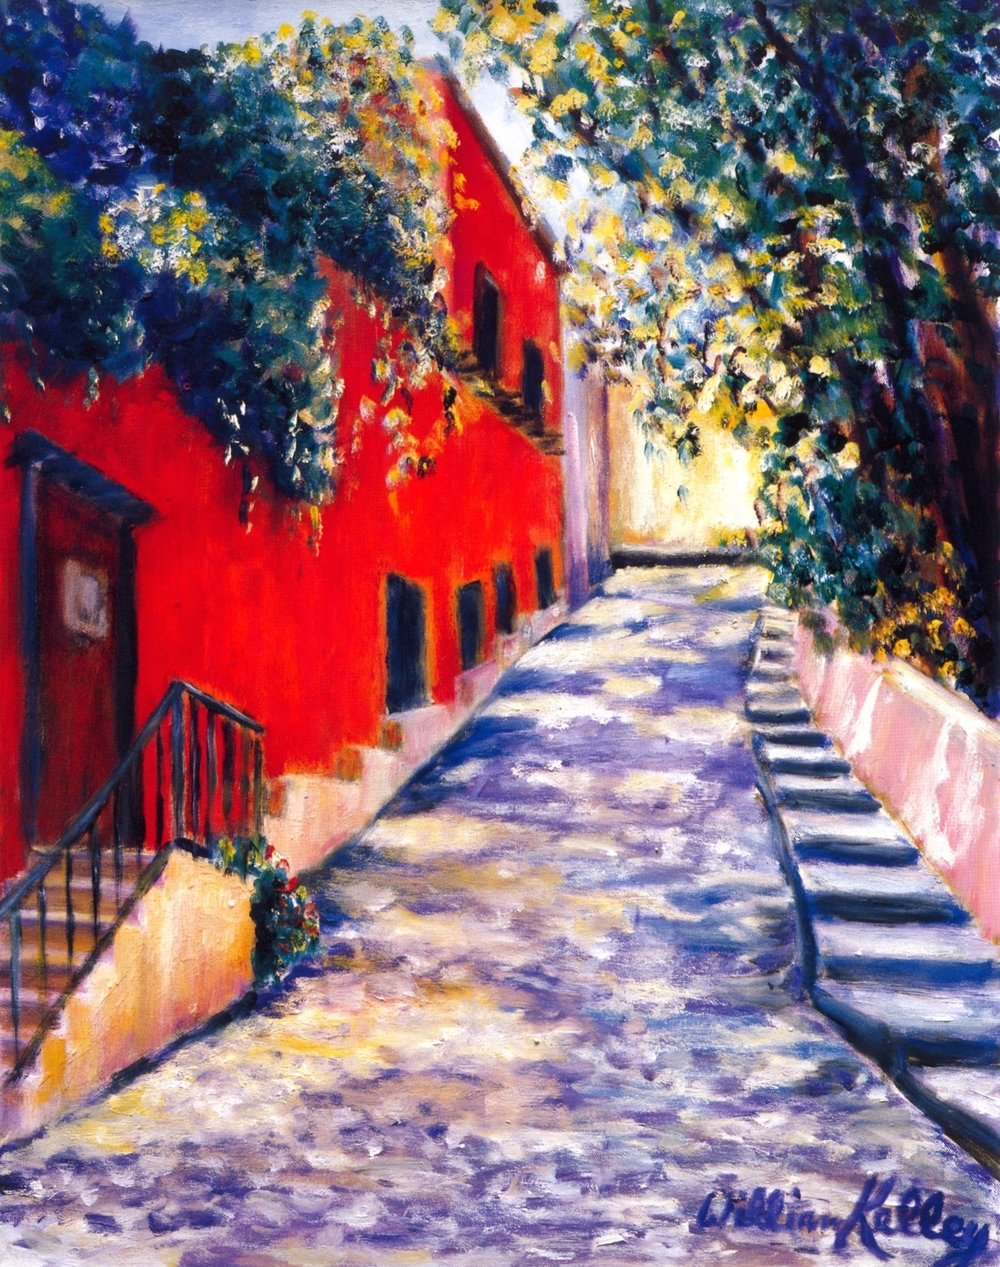 Casa Liza San Miguel d'Allende   Oil on canvas, 20'' x 24'', 2003